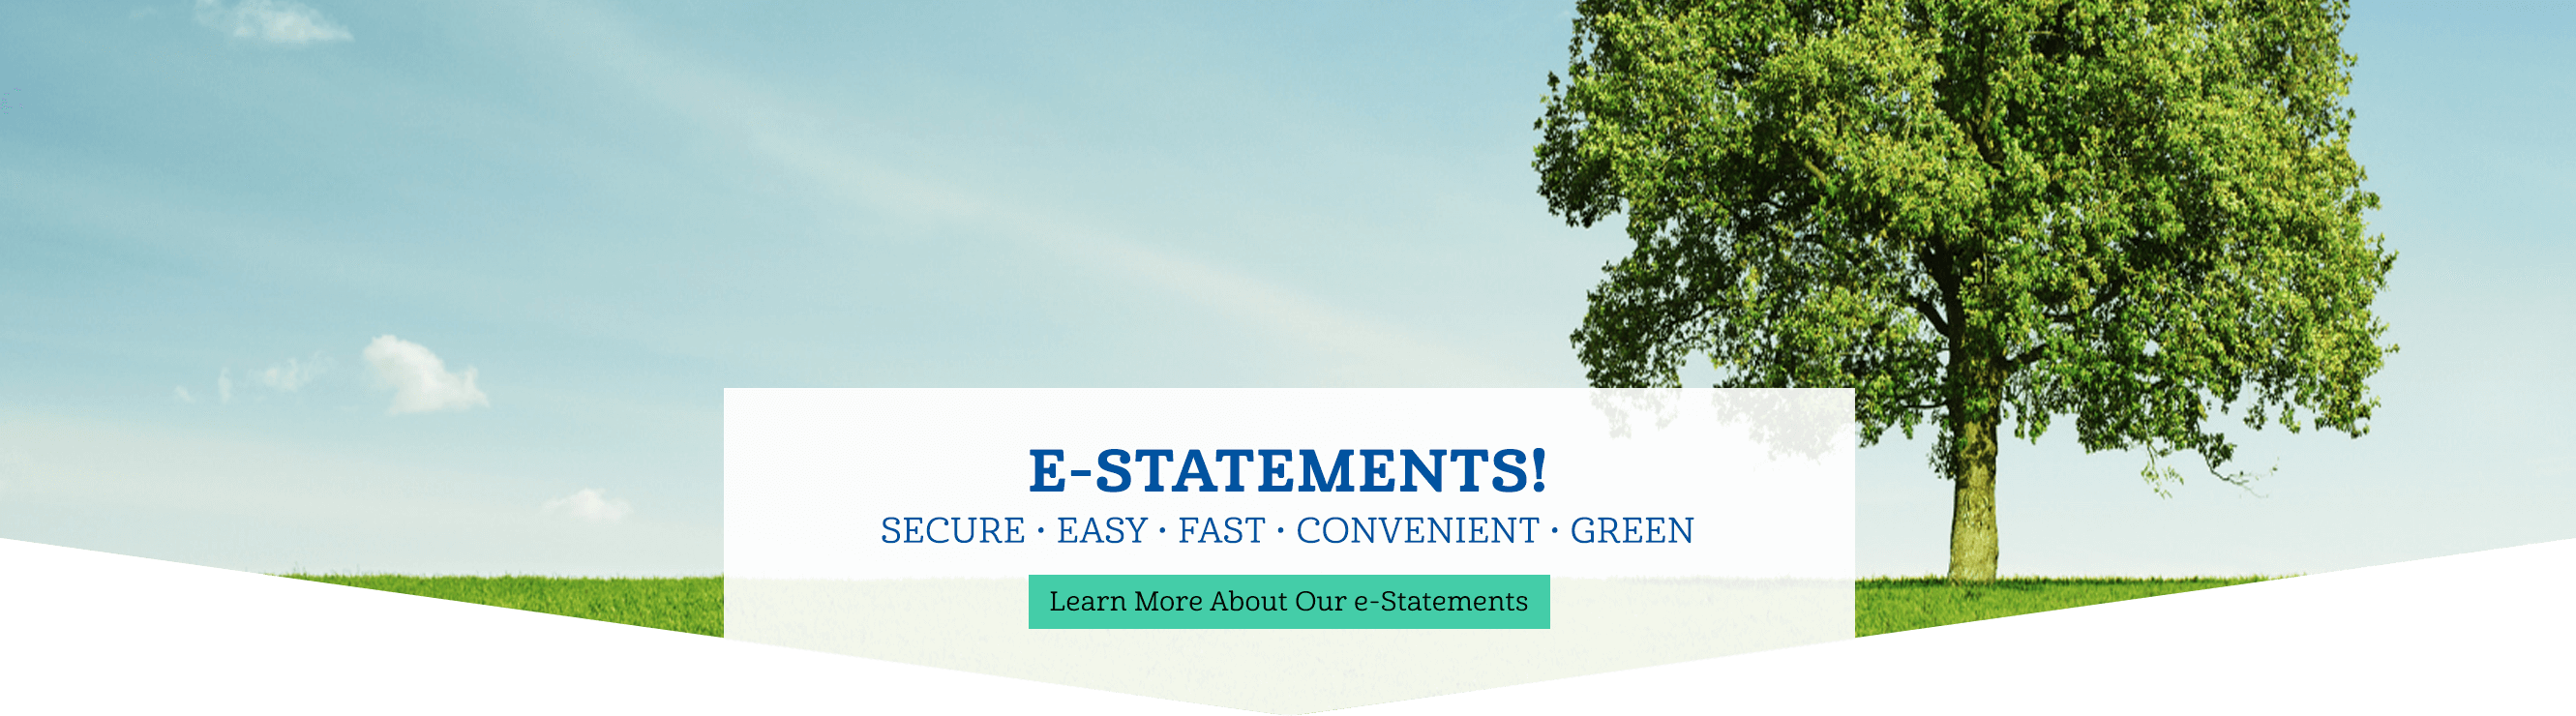 E-Statements! Secure, Easy, Fast, Convenient, green. Learn More About Our e-Statements